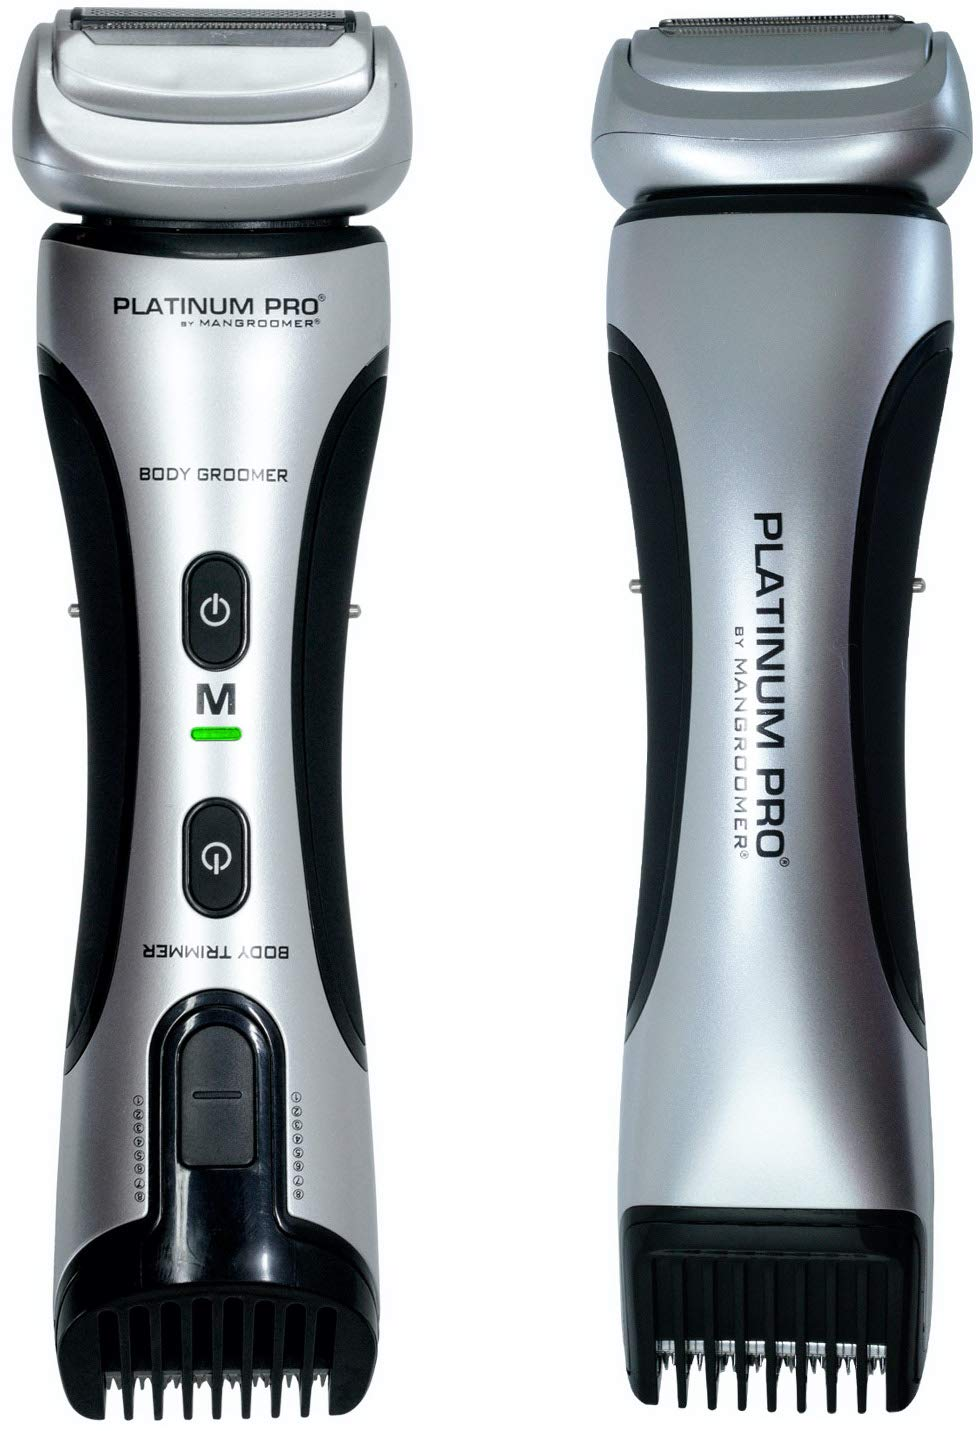 PLATINUM PRO by MANGROOMER - New Body Groomer, Ball Groomer and Body Trimmer with Lithium Max Battery, Bonus Extra Foil and Storage Case! (Generation 8.0)